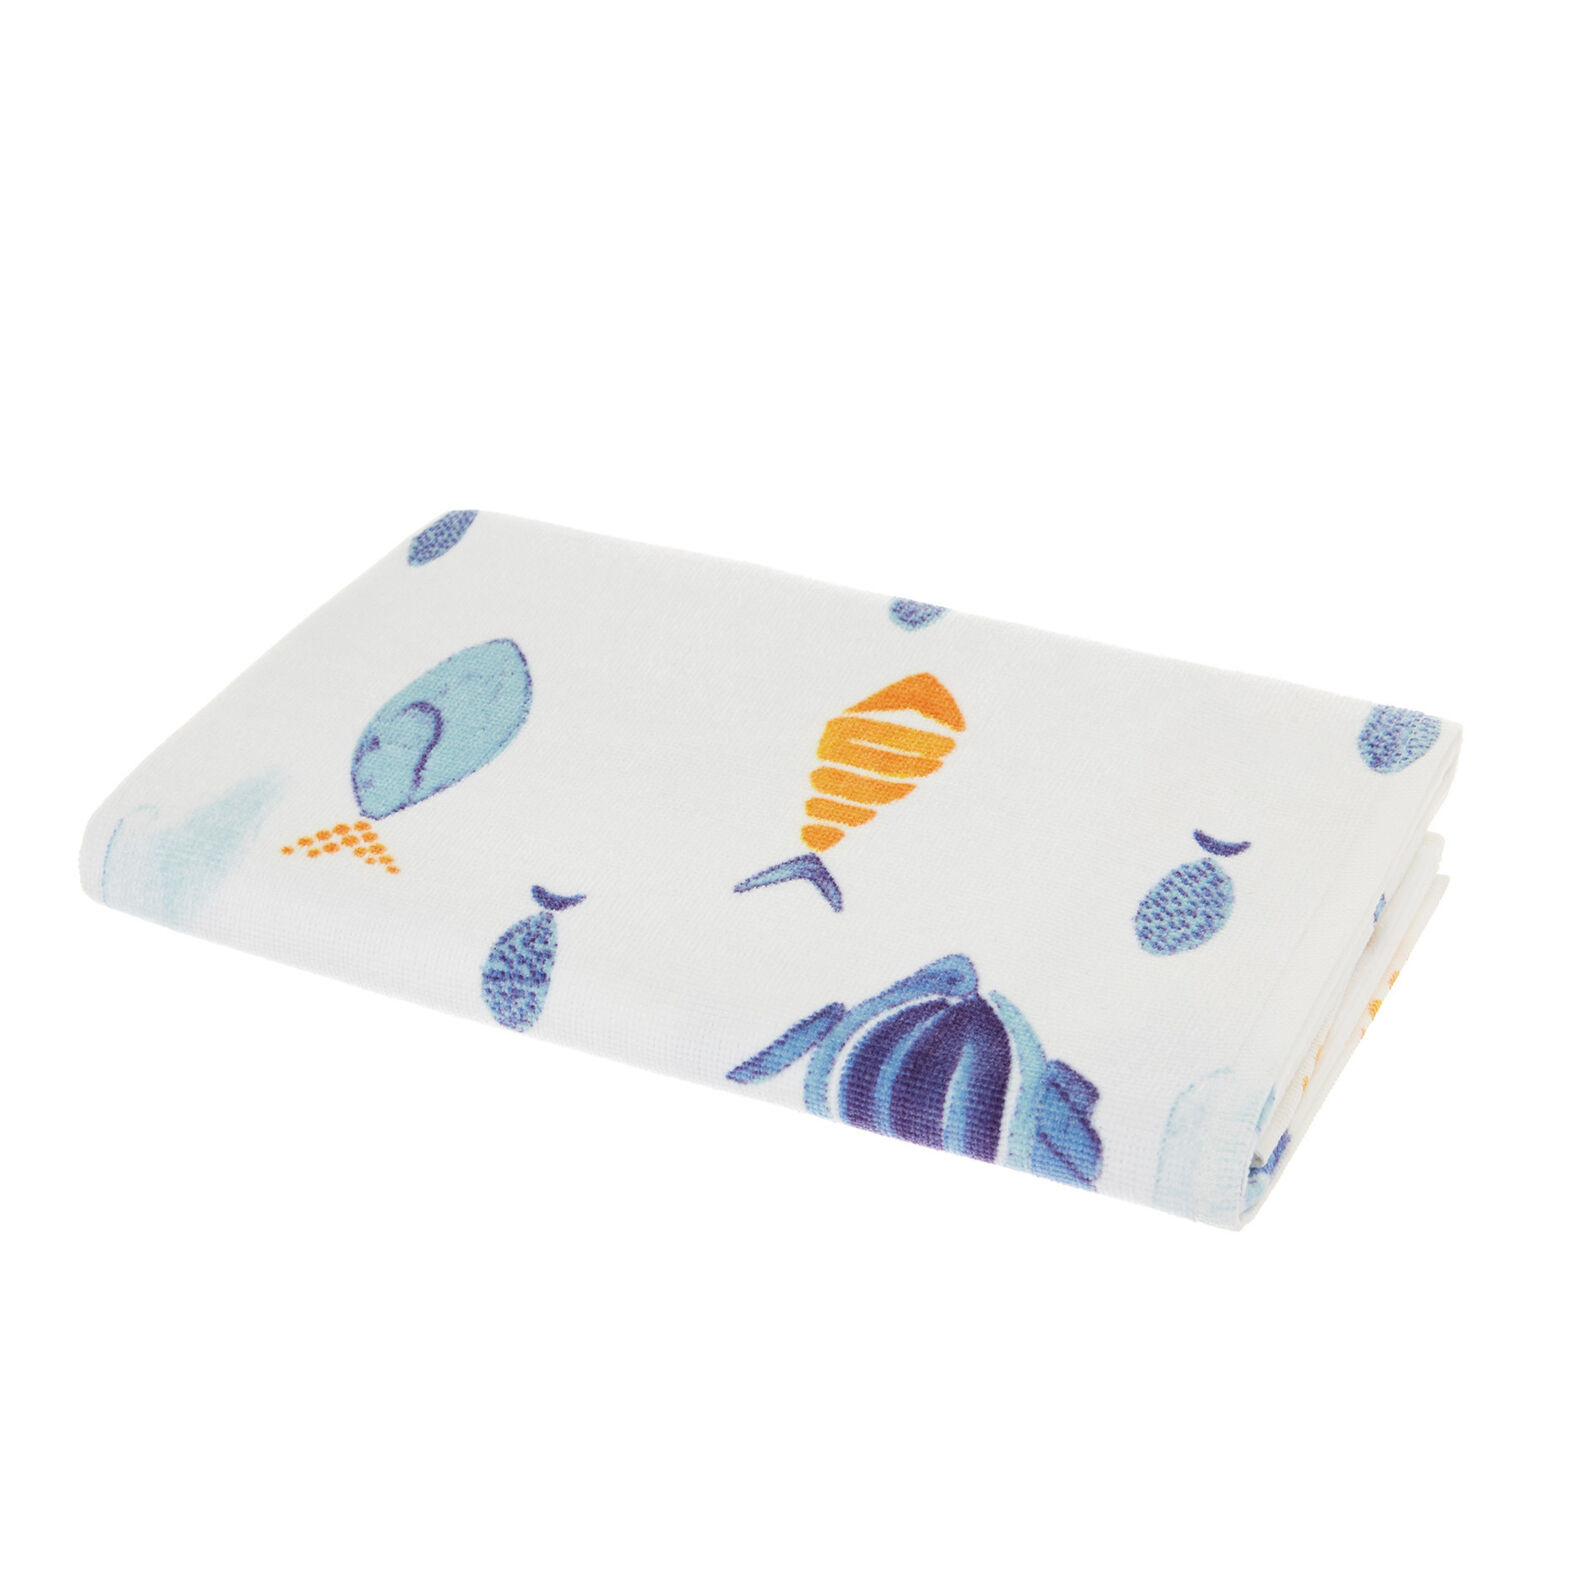 Velour cotton towel with fish motif